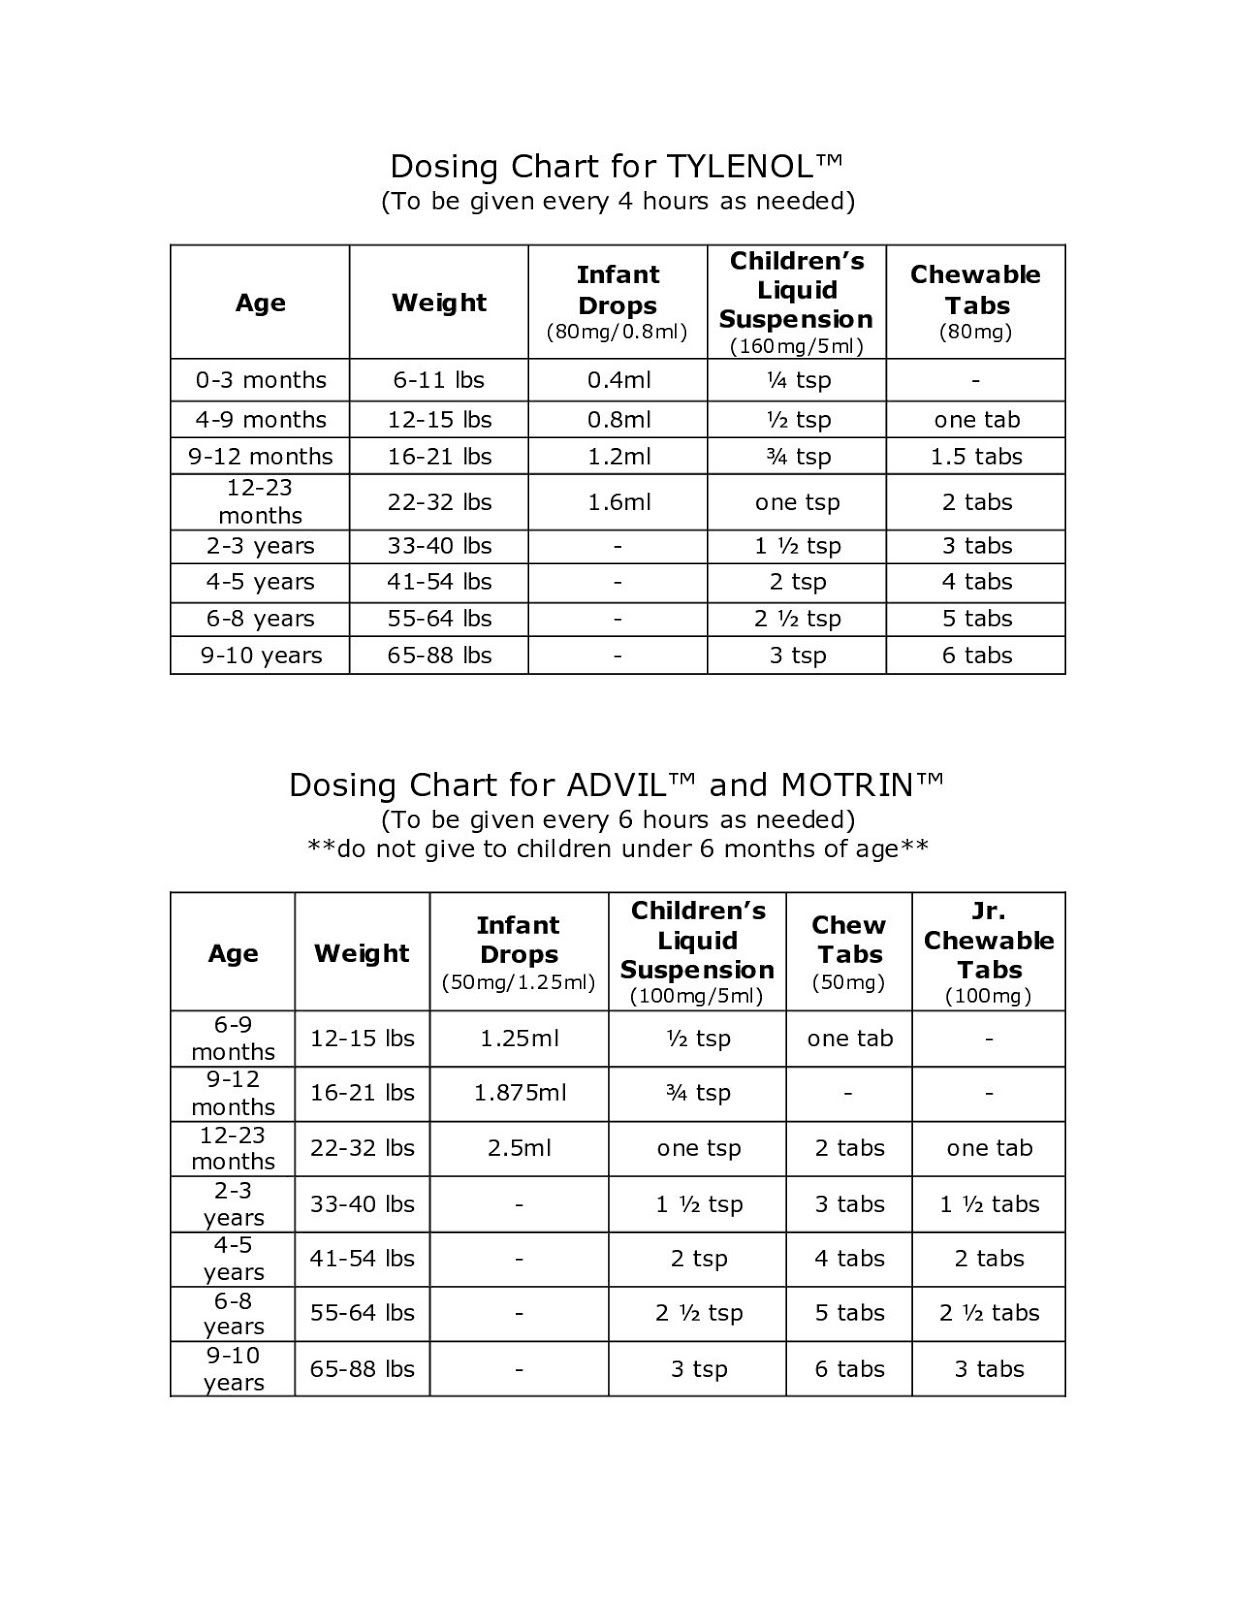 Baby Doses For Tylenol And Motrin From The Blog Of A Nurse At Children S Hospital